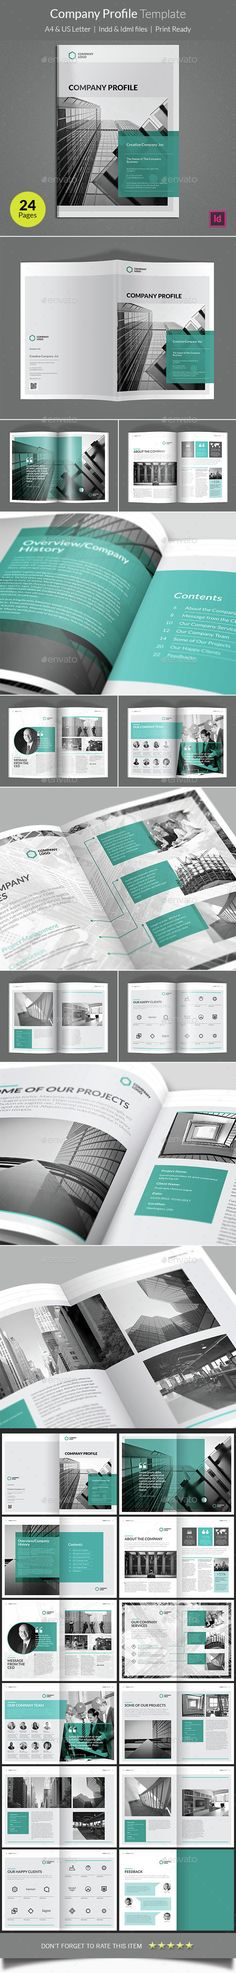 Company Profile \ Overview Template More Company profile ideas - professional business profile template